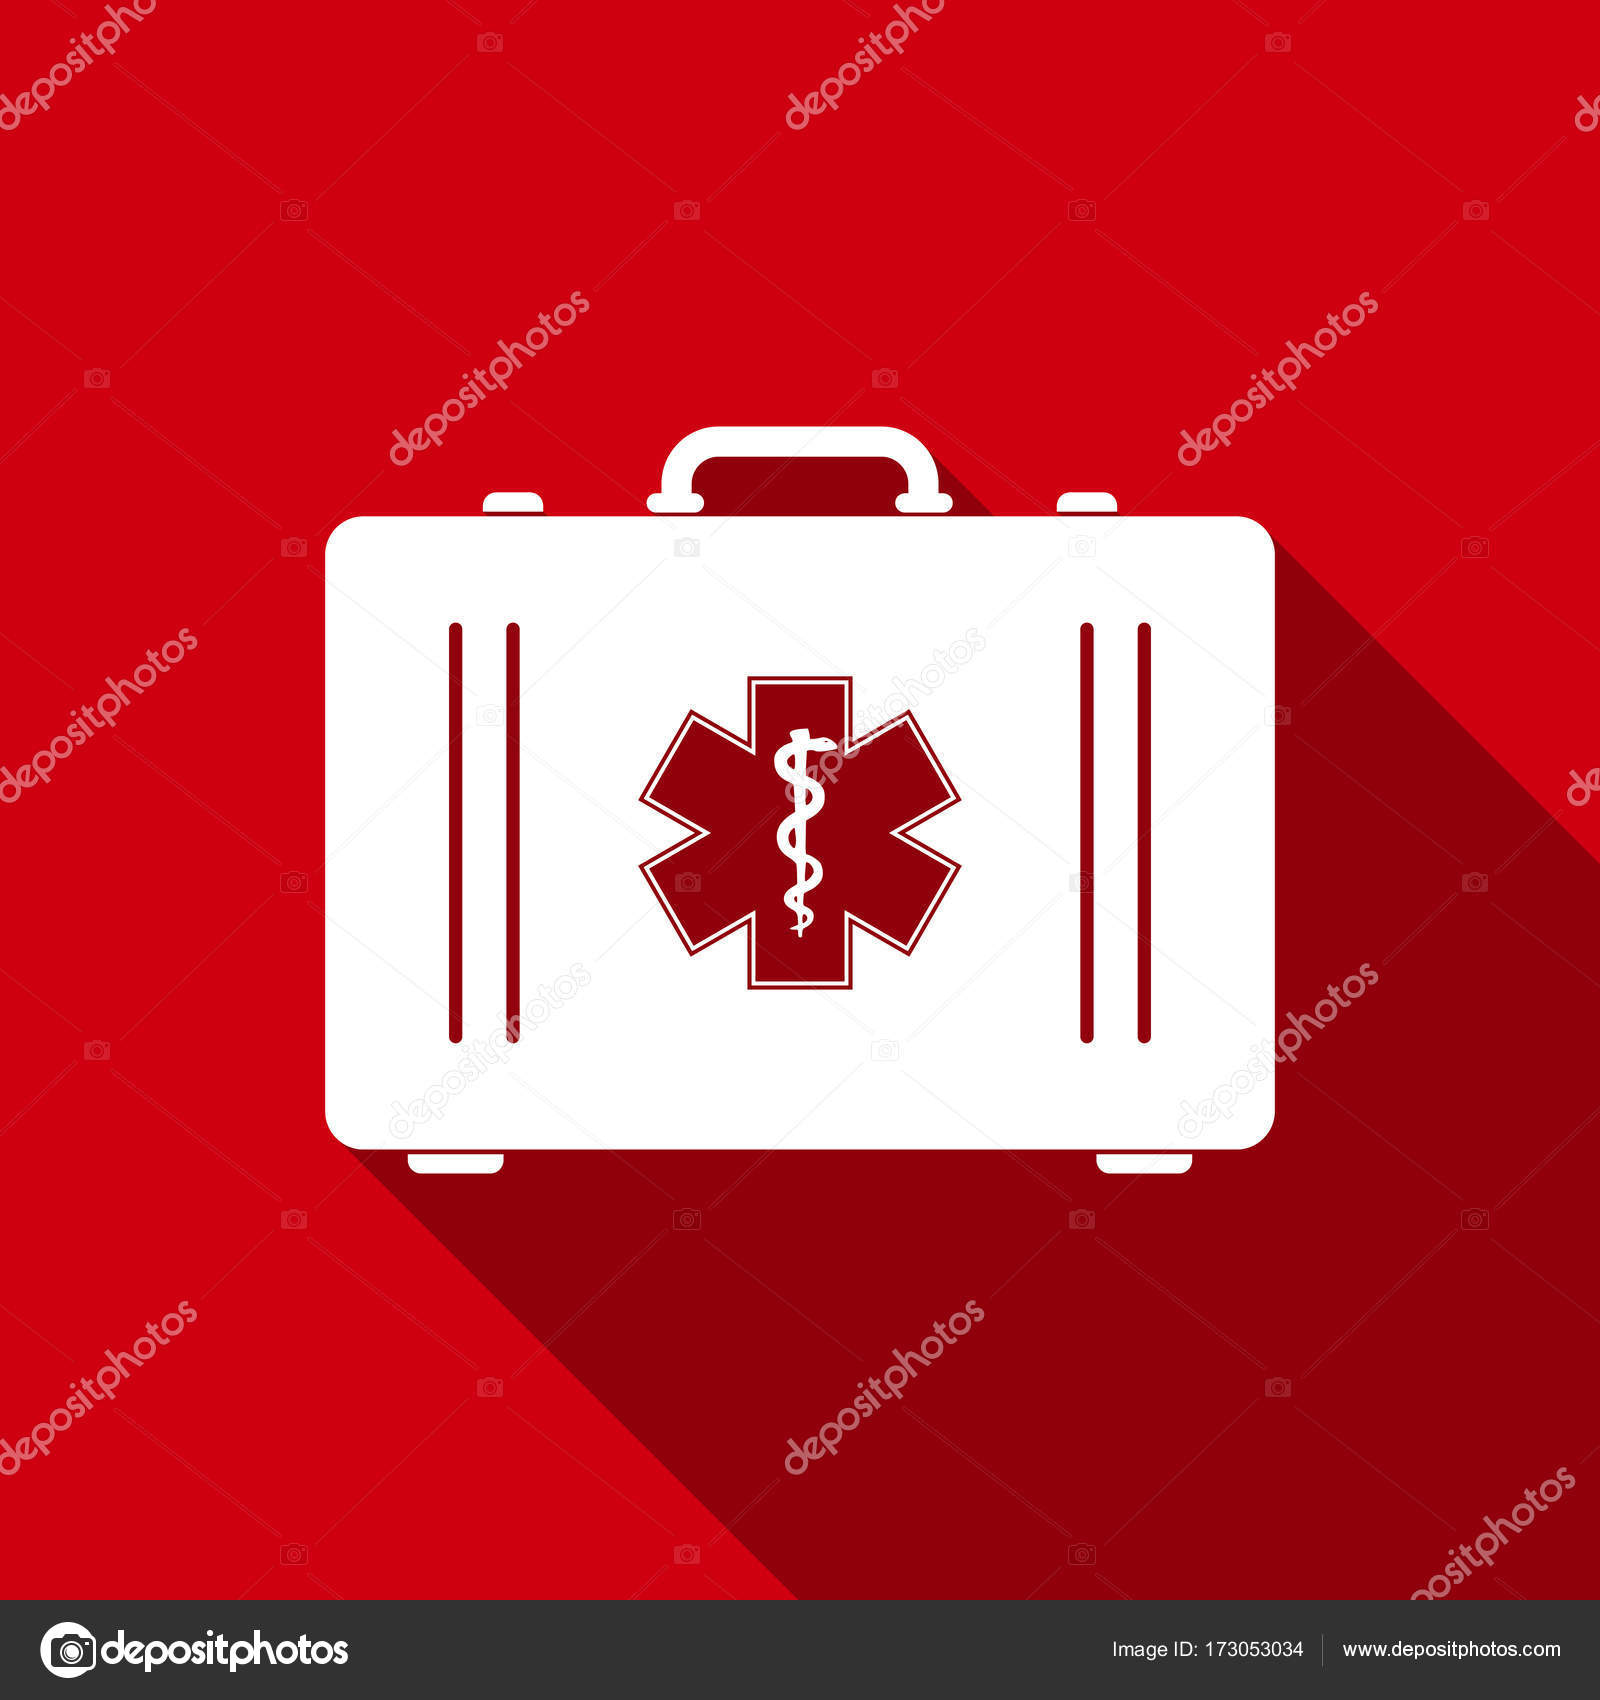 First Aid Box And Medical Symbol Of The Emergency Star Of Life